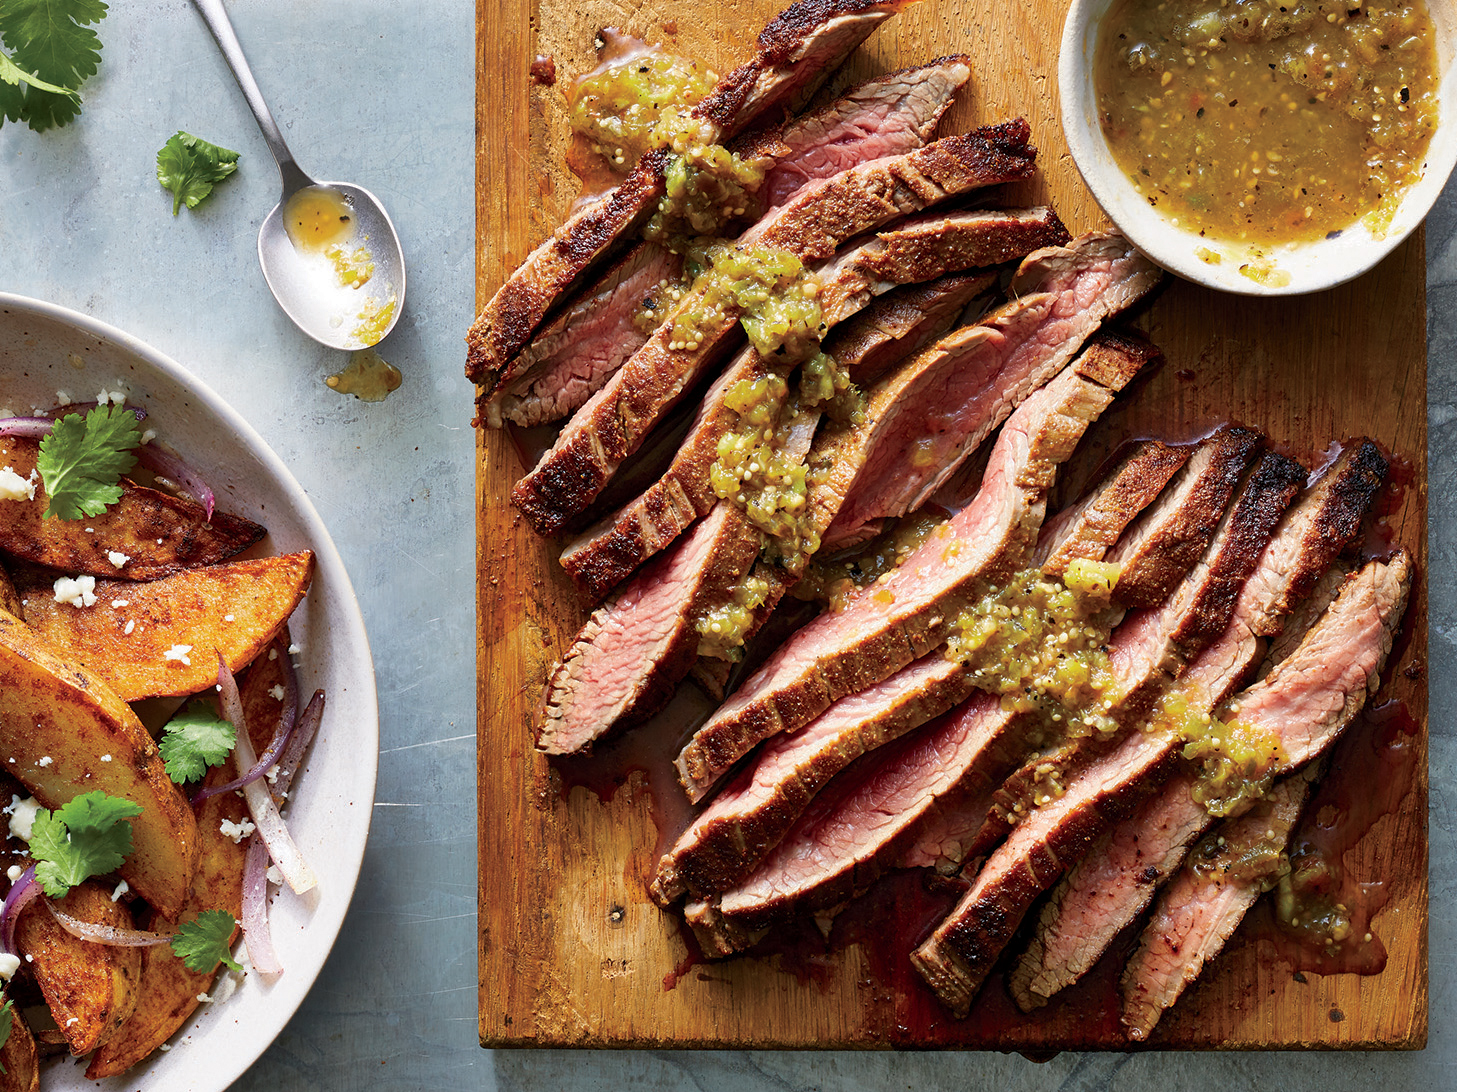 Spice-Crusted Flank Steak with Crispy Potatoes